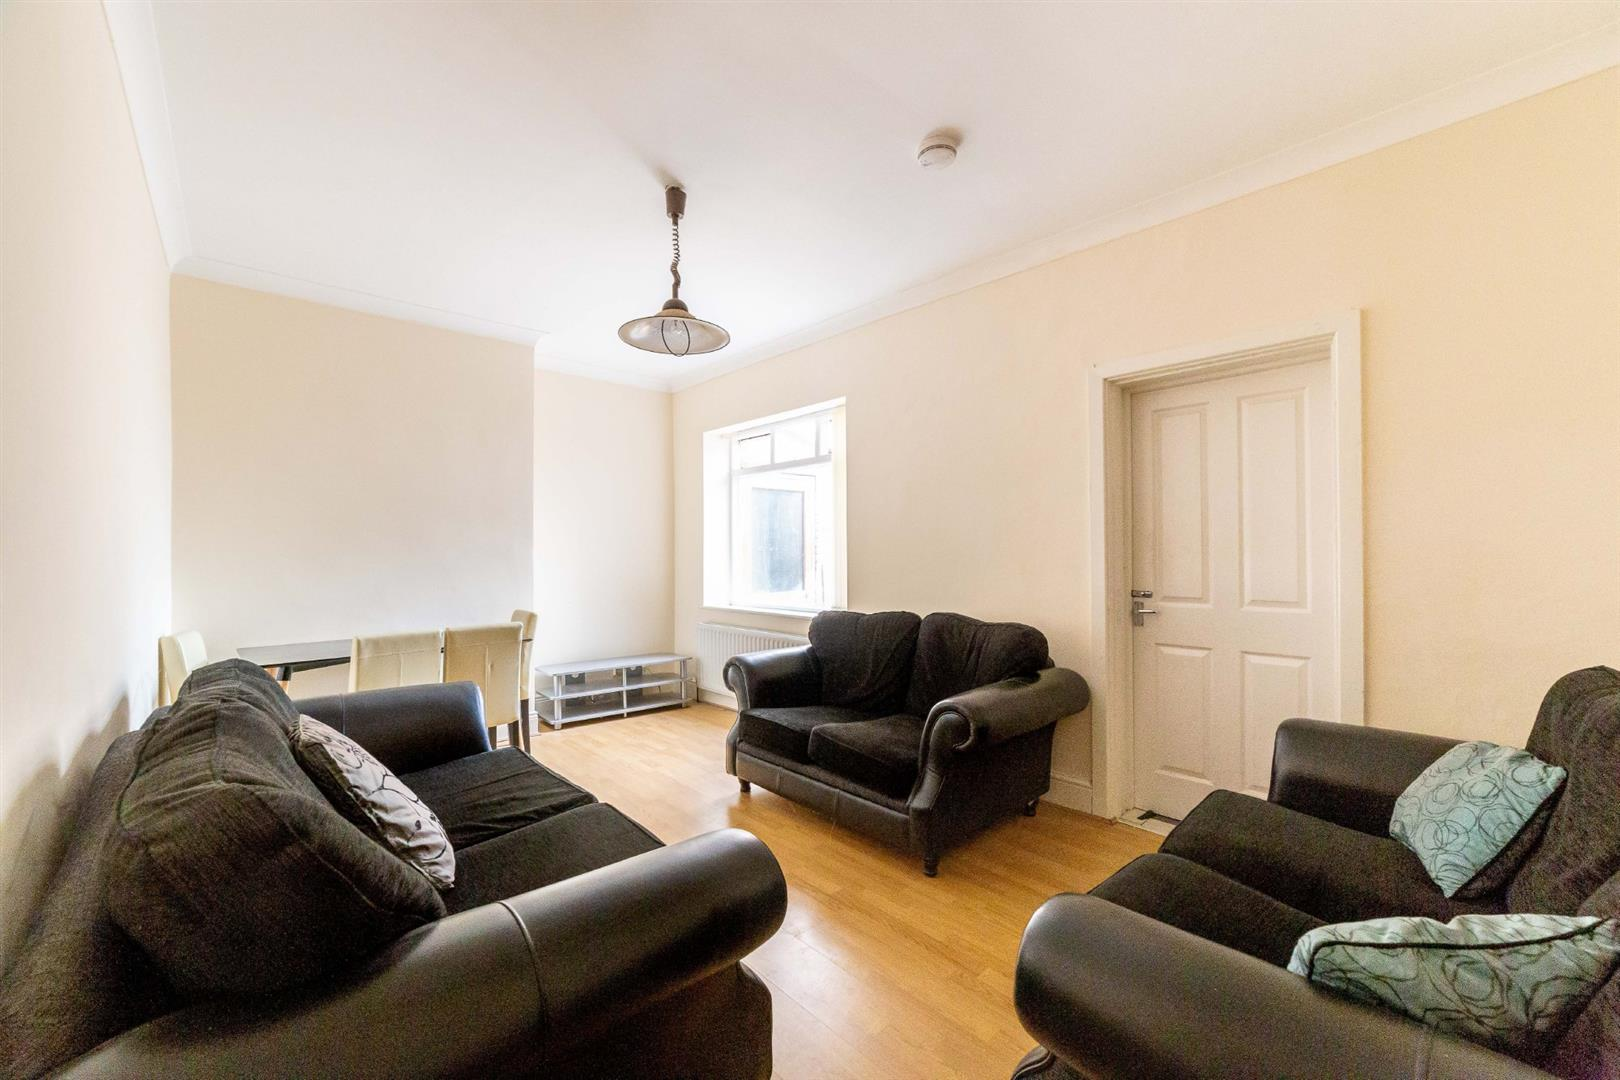 5 bed semi-detached house to rent in Newcastle Upon Tyne, NE6 5QQ  - Property Image 1